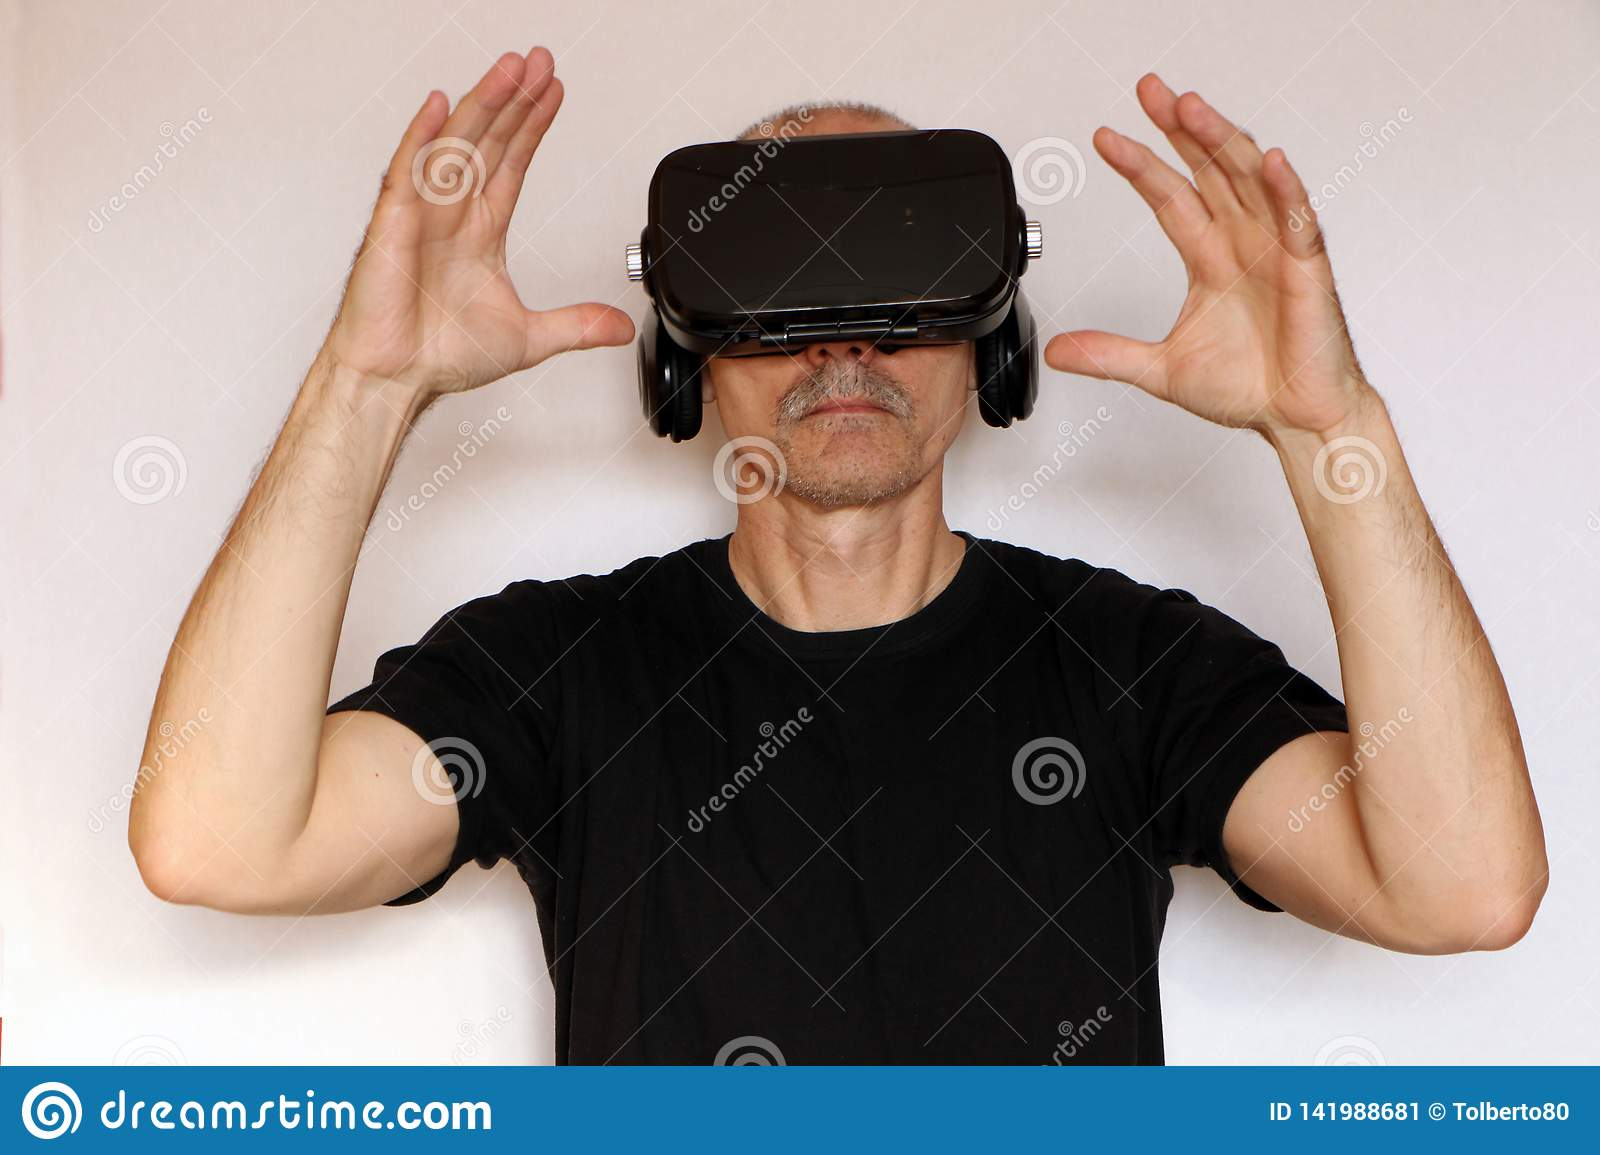 Close-up of a man in a black T-shirt with glasses of virtual reality